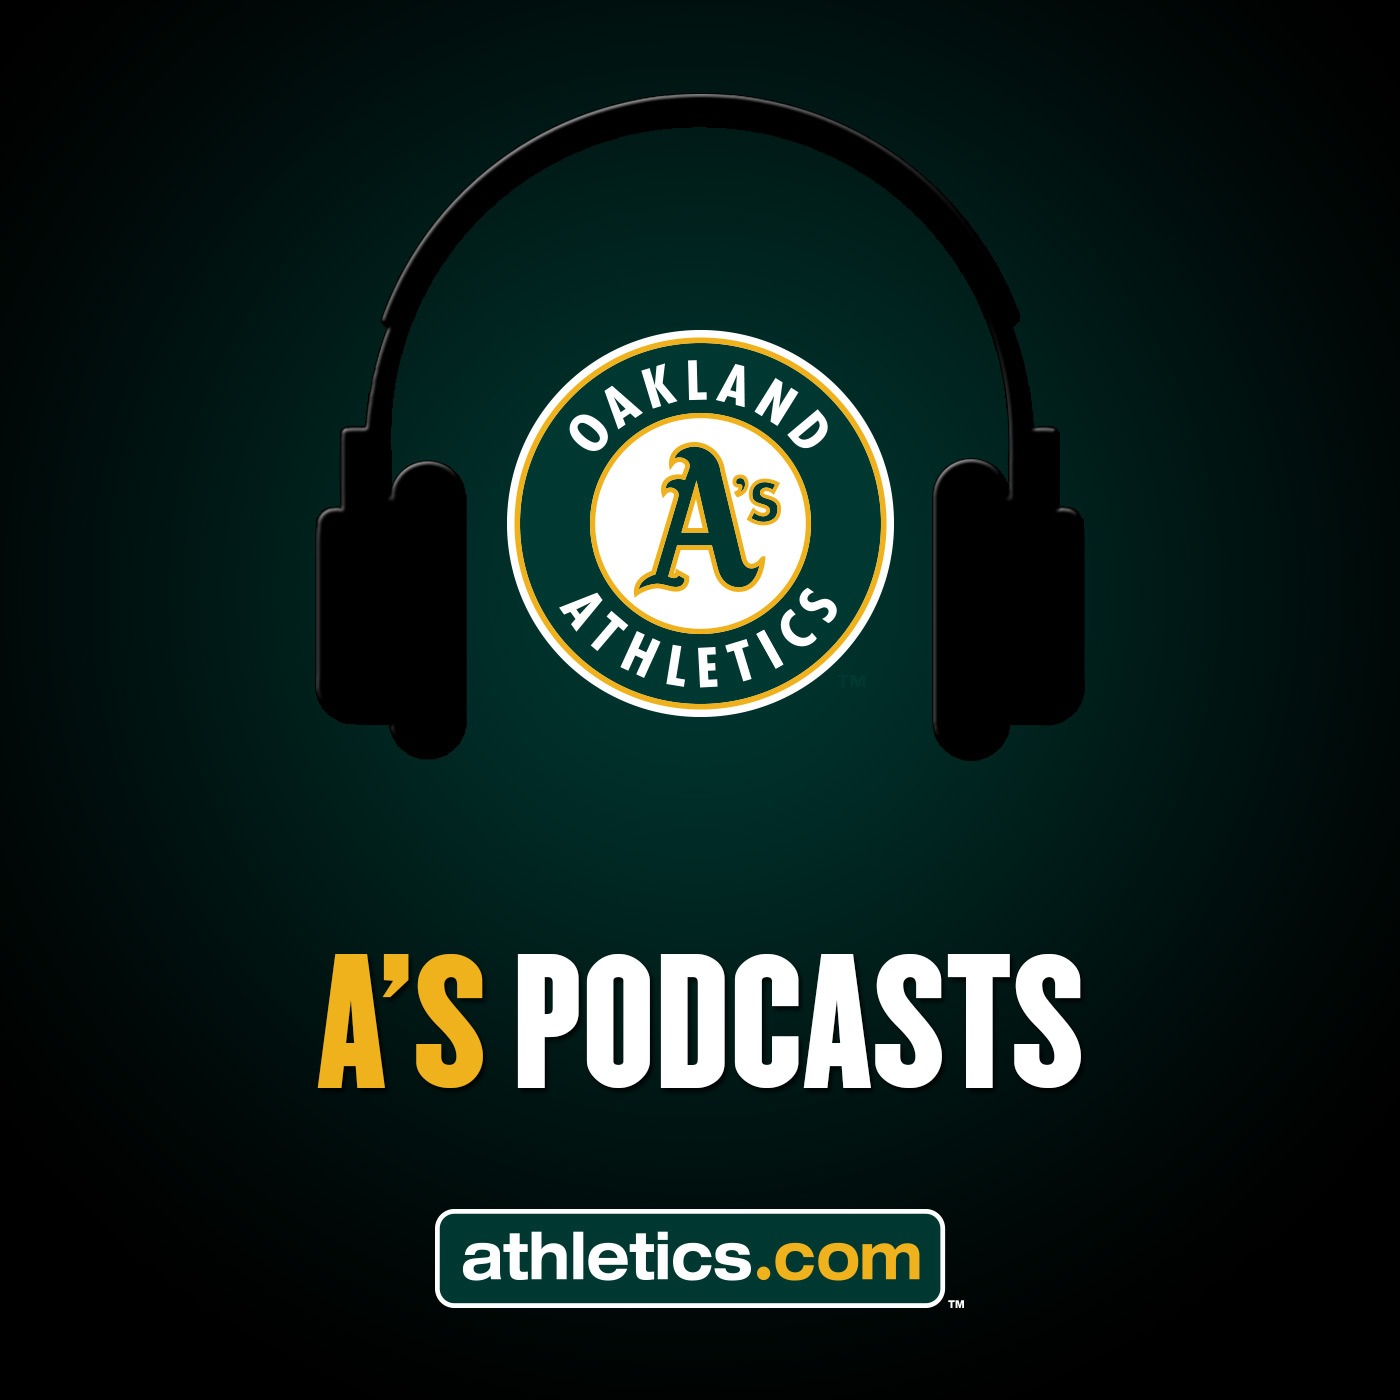 <![CDATA[Oakland A's Podcast]]>